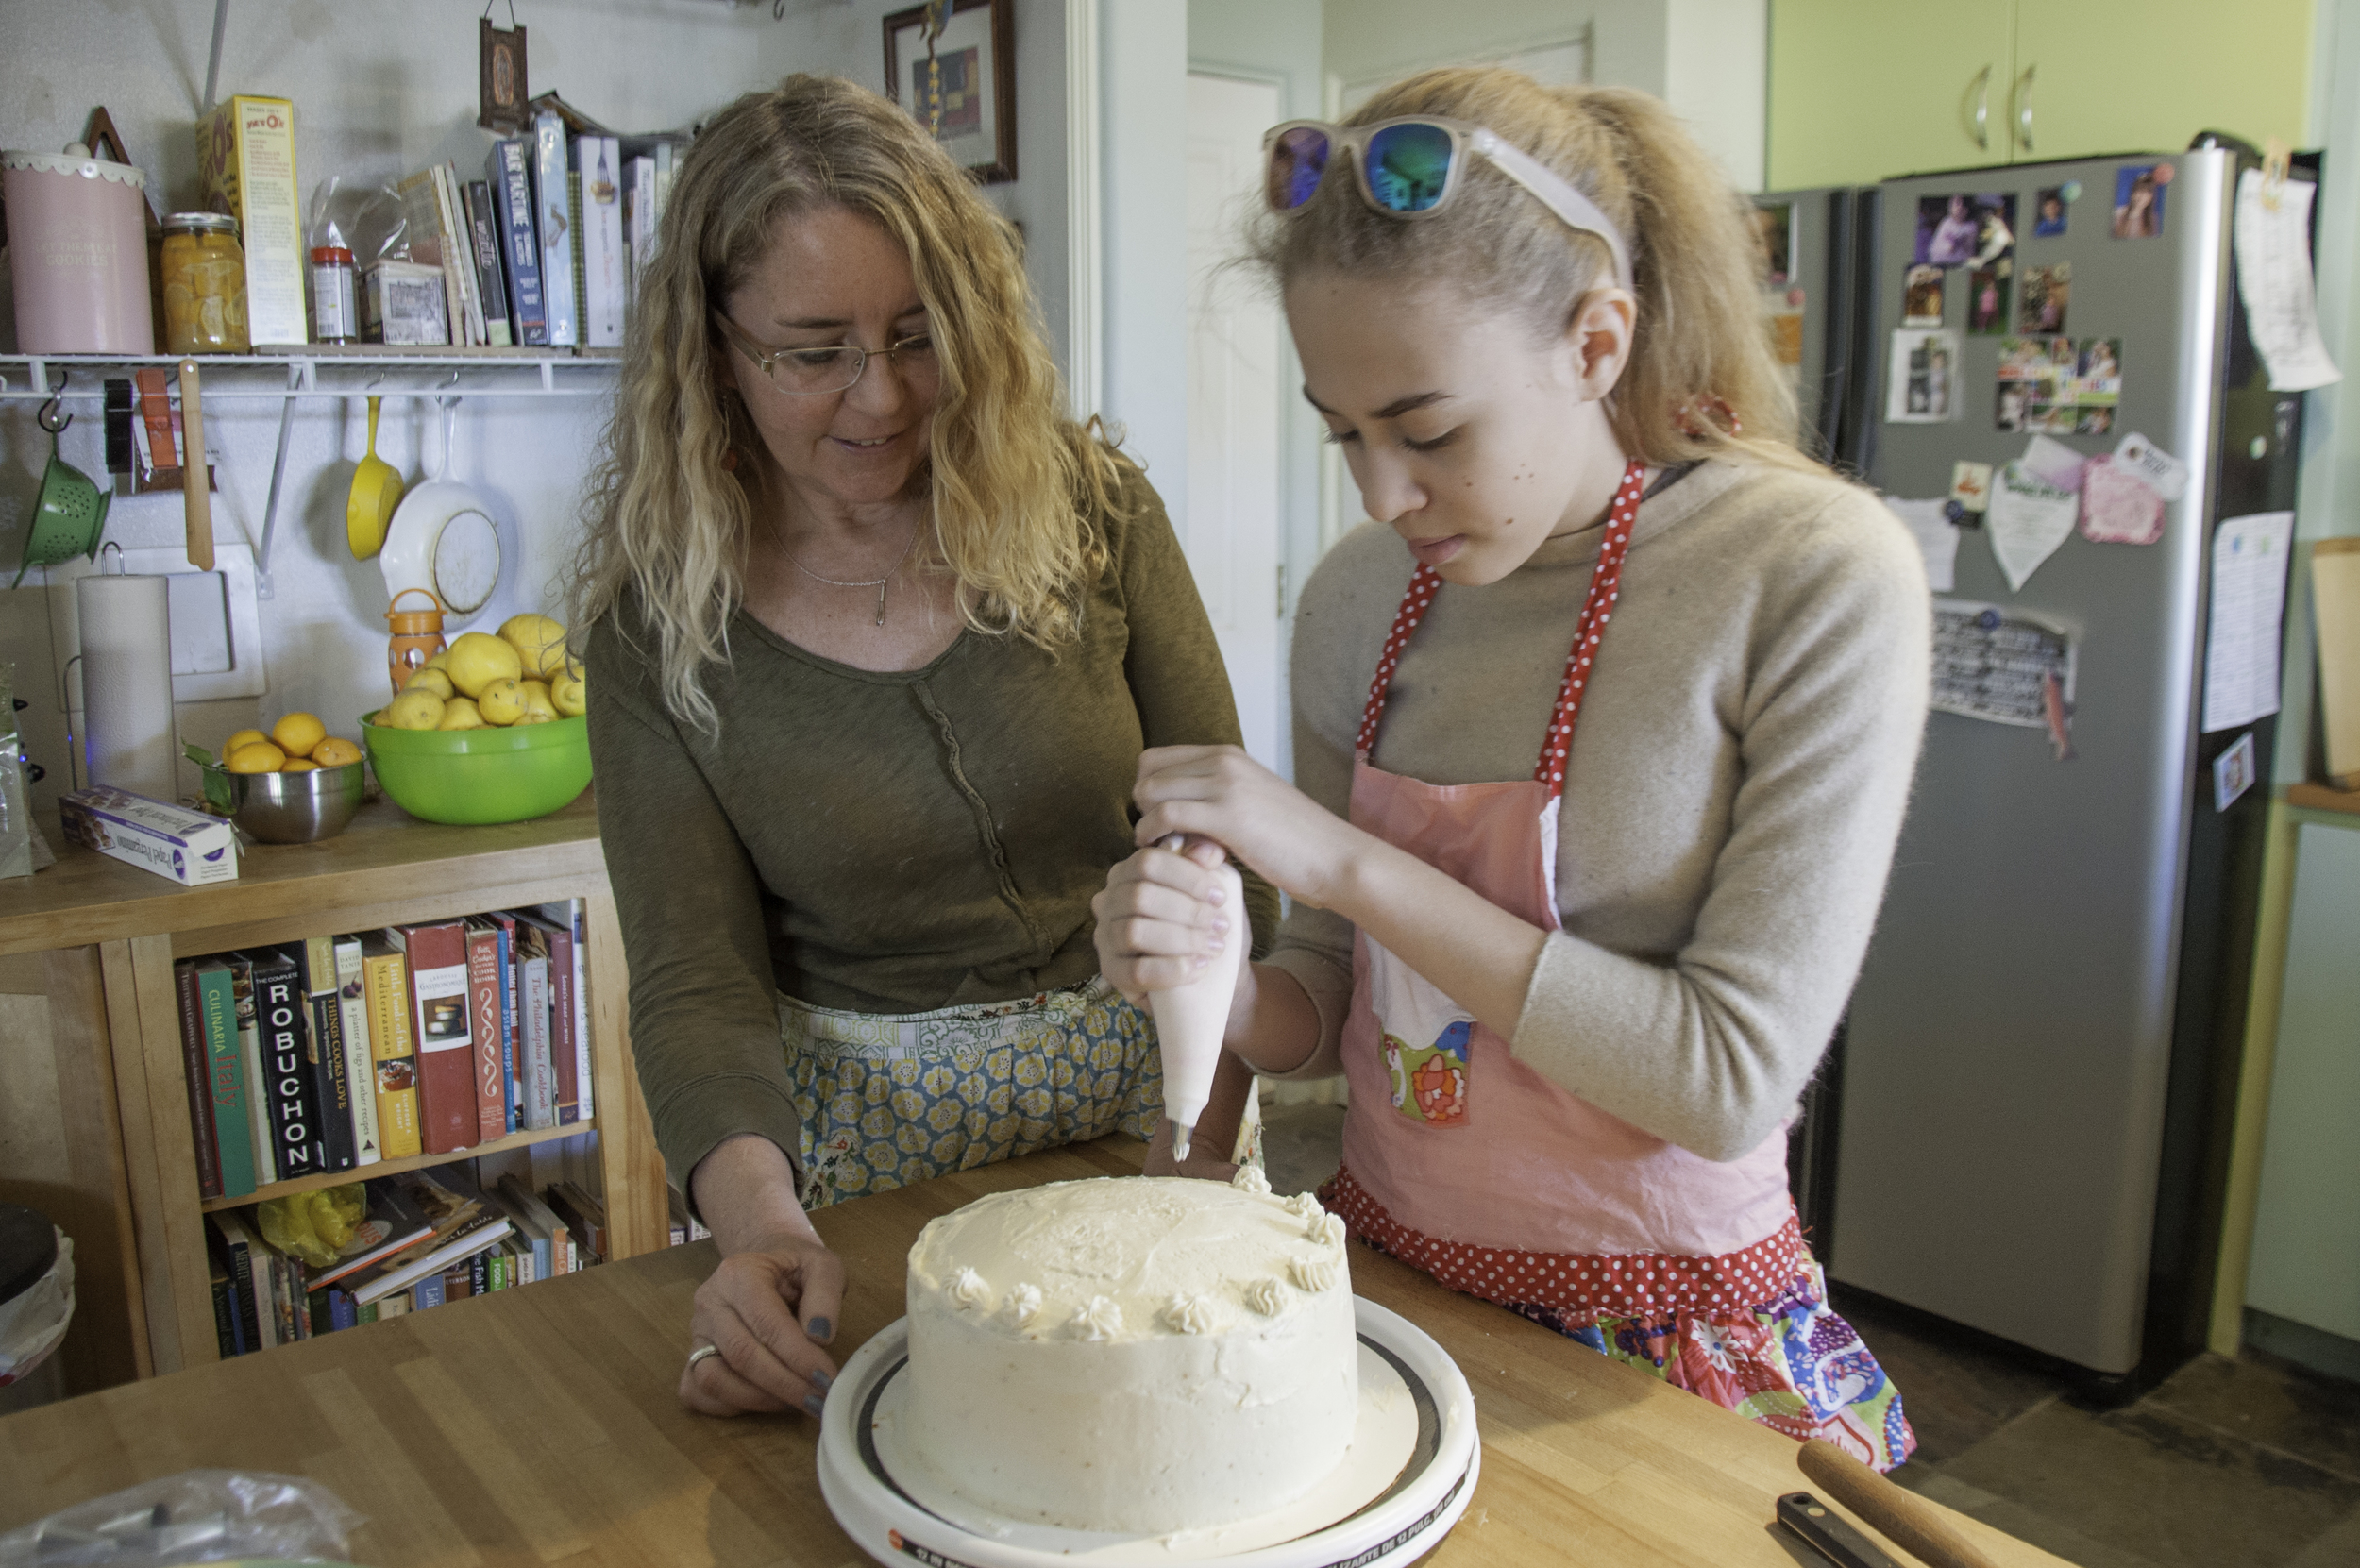 """Jane Pric  e - Jane Price enjoys being a longtime resident of Santa Fe. She is a dedicated Postpartum Doula, caring for babies through her business, Mothering Mothers. Another passion is her business, Tea Rose Baking. """"Homemade desserts"""" for holidays and all occasions are her speciality. """"I love nurturing, and baking is another creative way to express it. Baking a cake, with organic local ingredients, and sharing my knowledge of the kitchen, including through mentoring, just as my mother did for me, passes on a deeply satisfying generational gift.""""   Honoree Gaugy - Honoree Gaugy is an eighth grader at Mandela International Magnet School."""